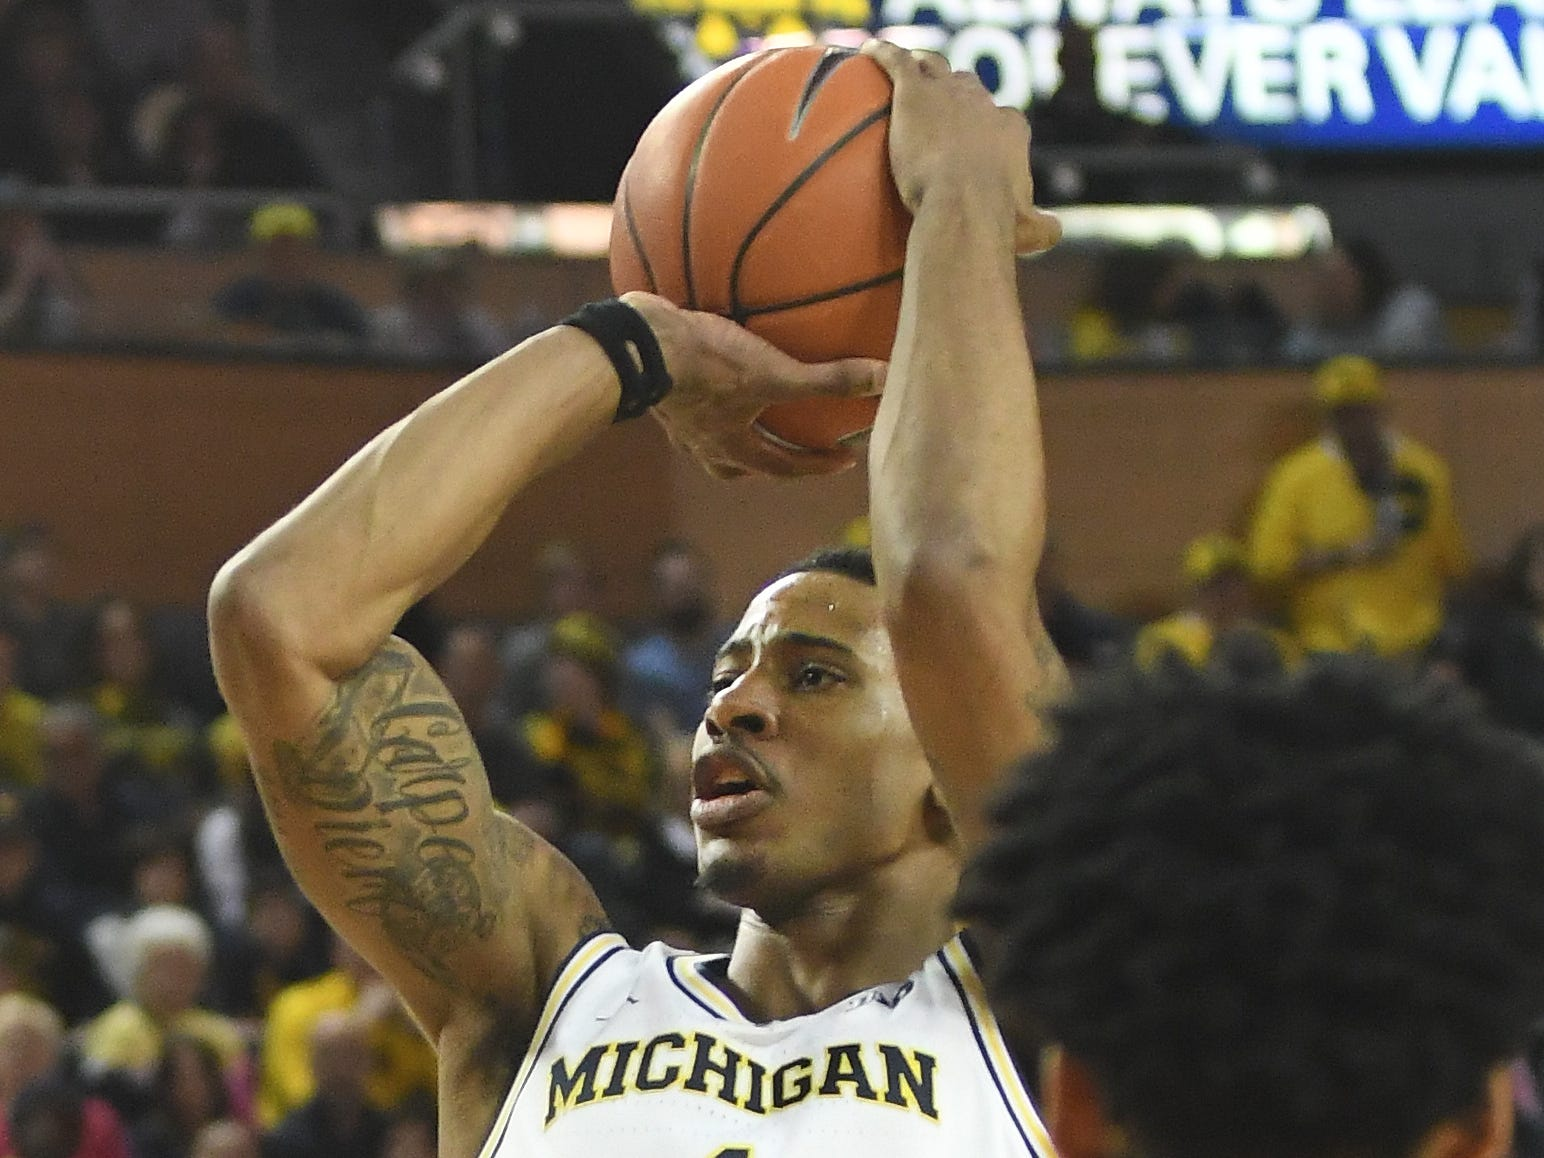 Michigan's Charles Matthews puts up a shot in the second half.